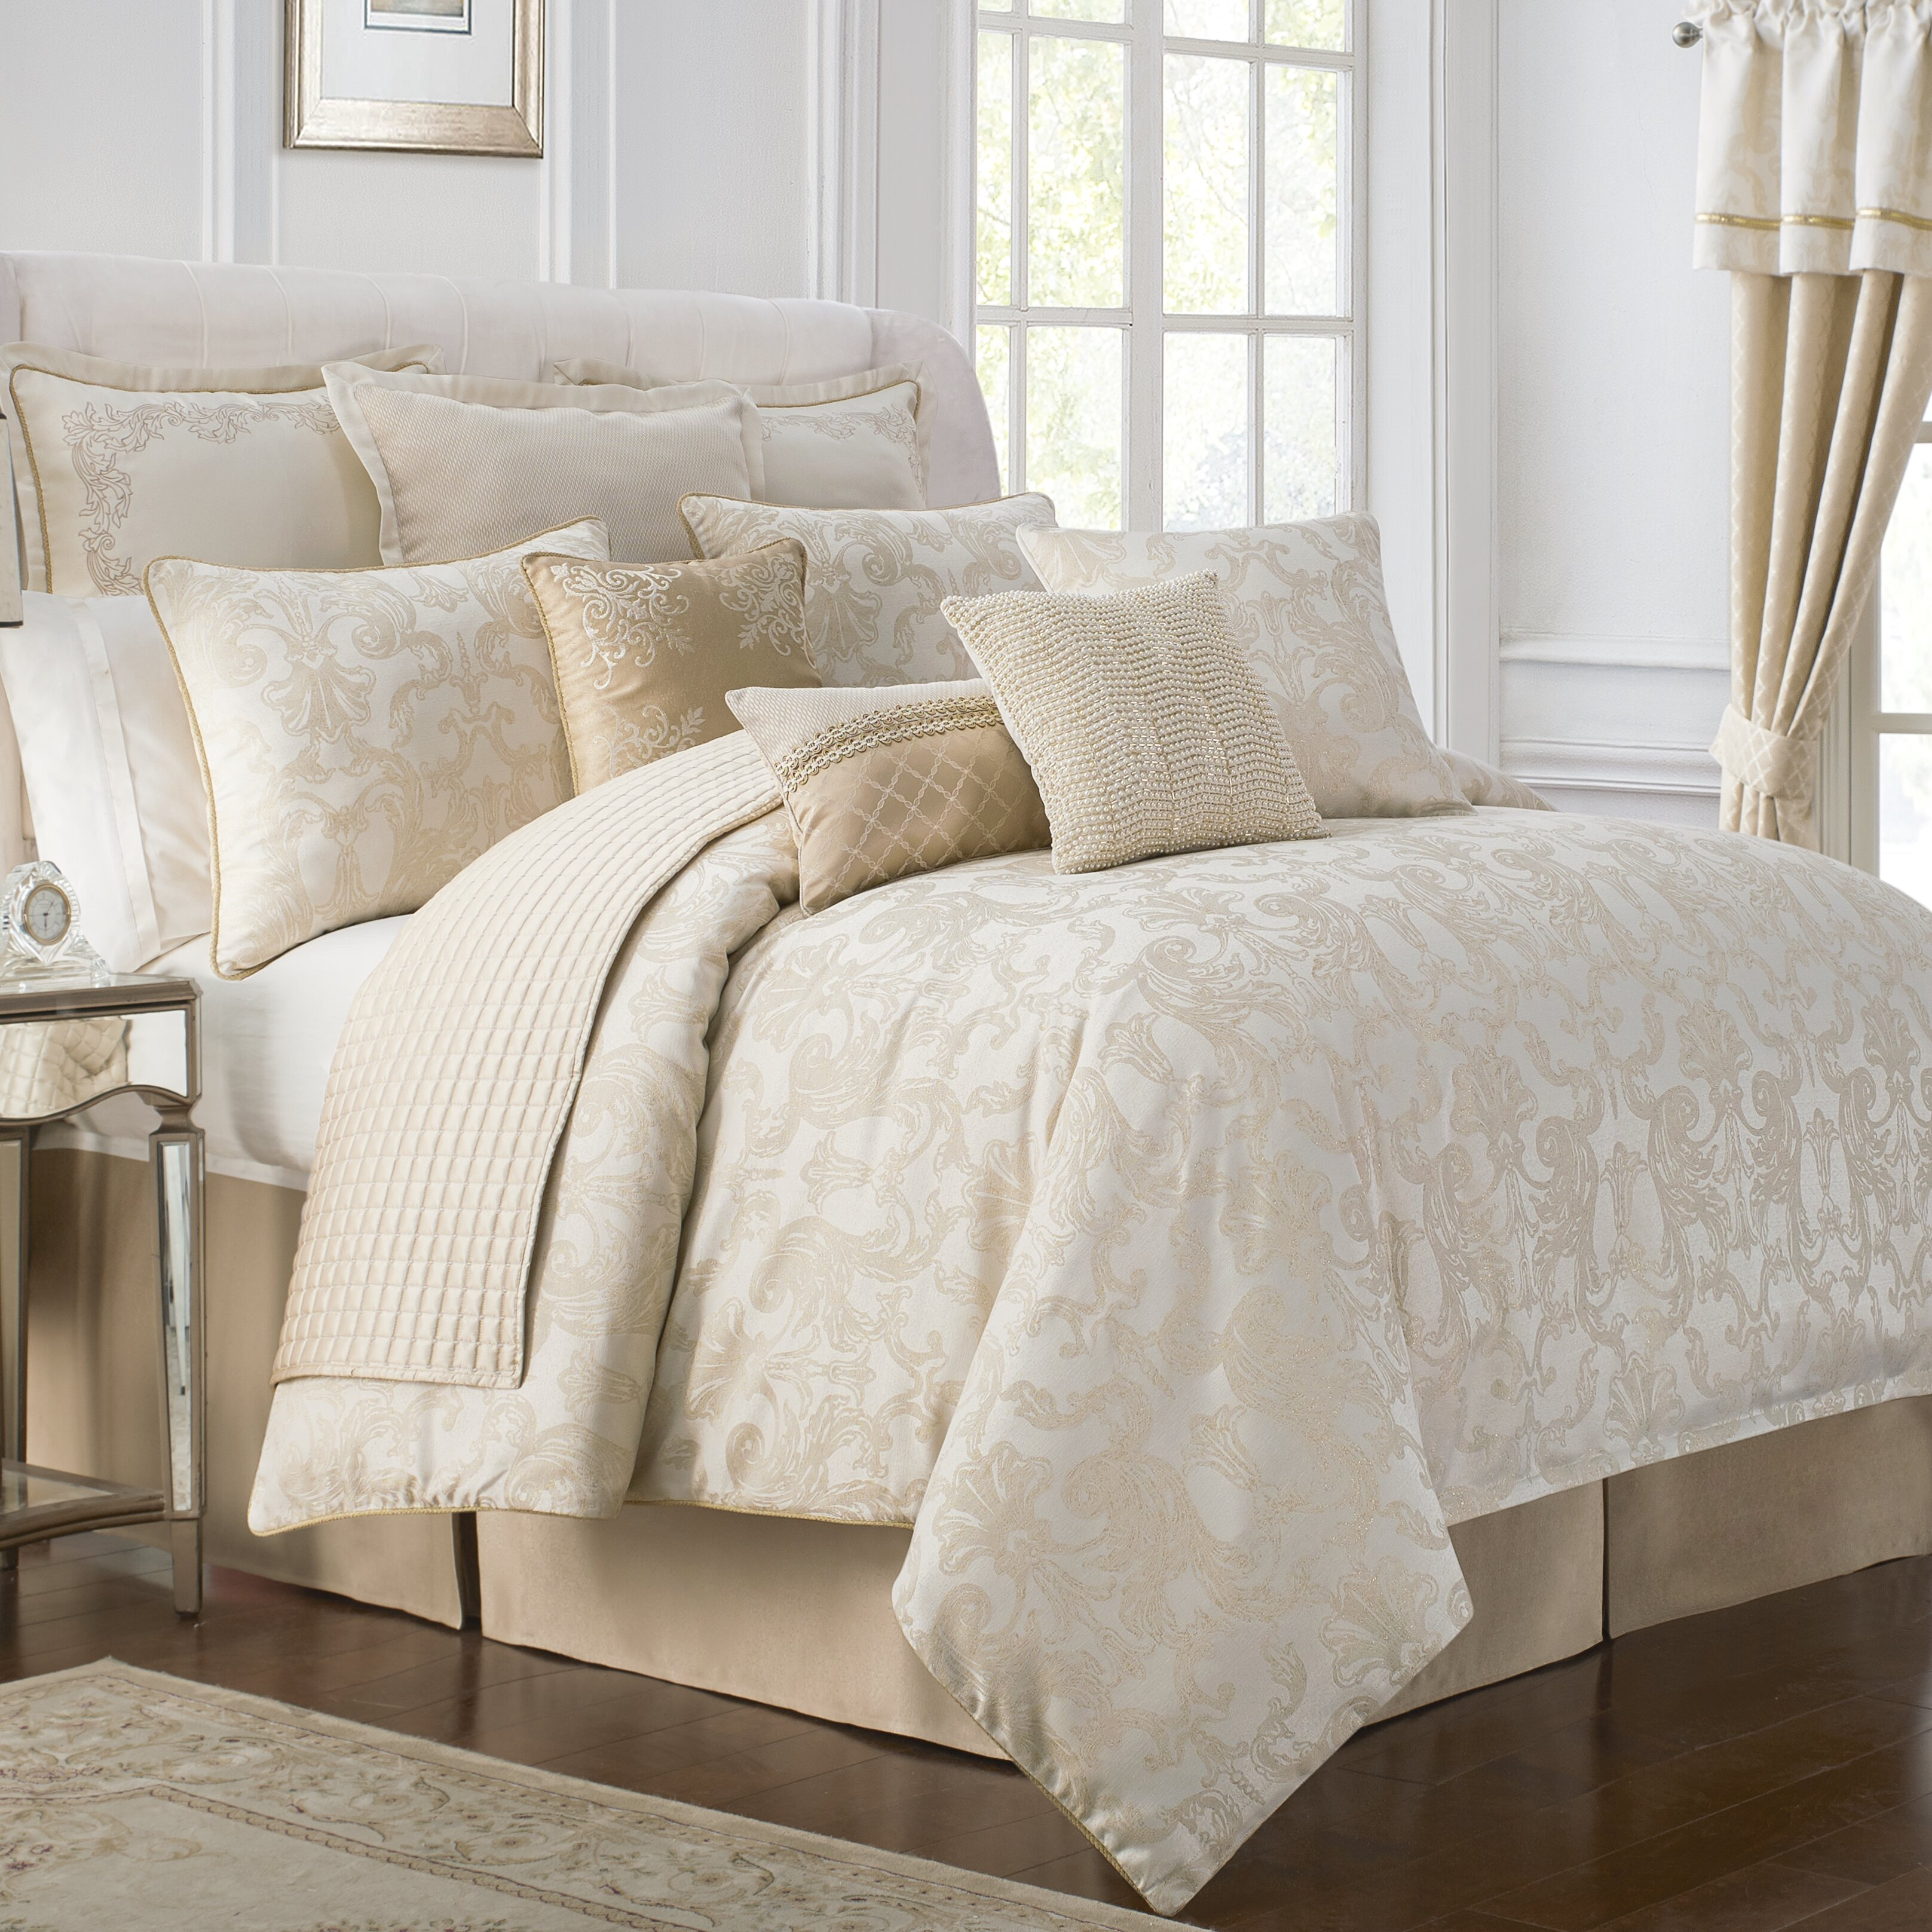 by aramis set queen waterford comforter bannon damask linens gold acanthus bedding sets decoration